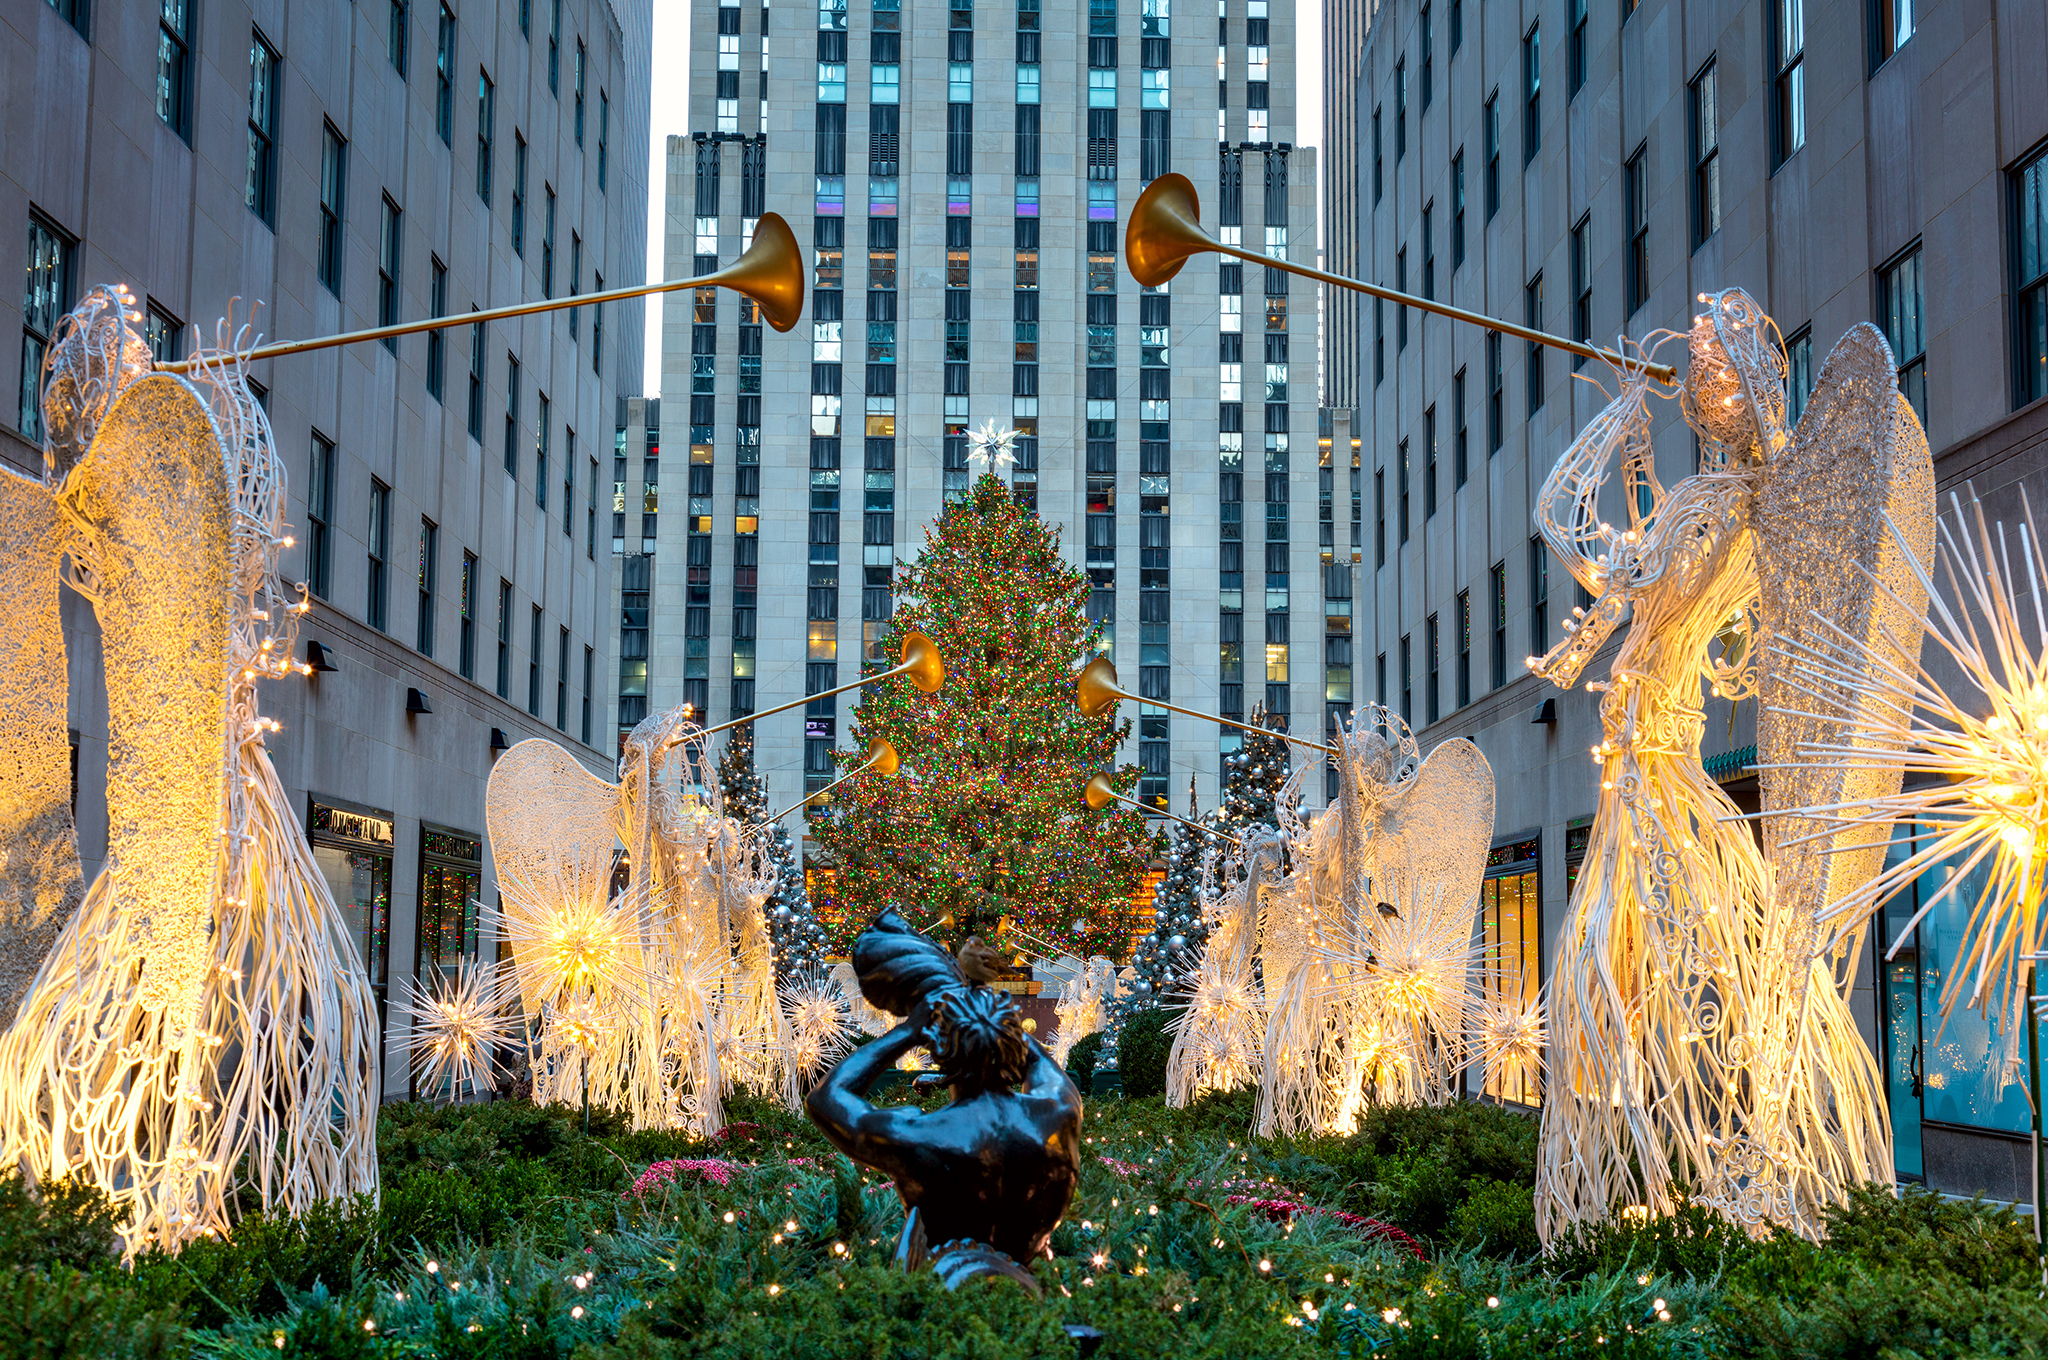 The Rockefeller Center Christmas Tree Arrives This Weekend